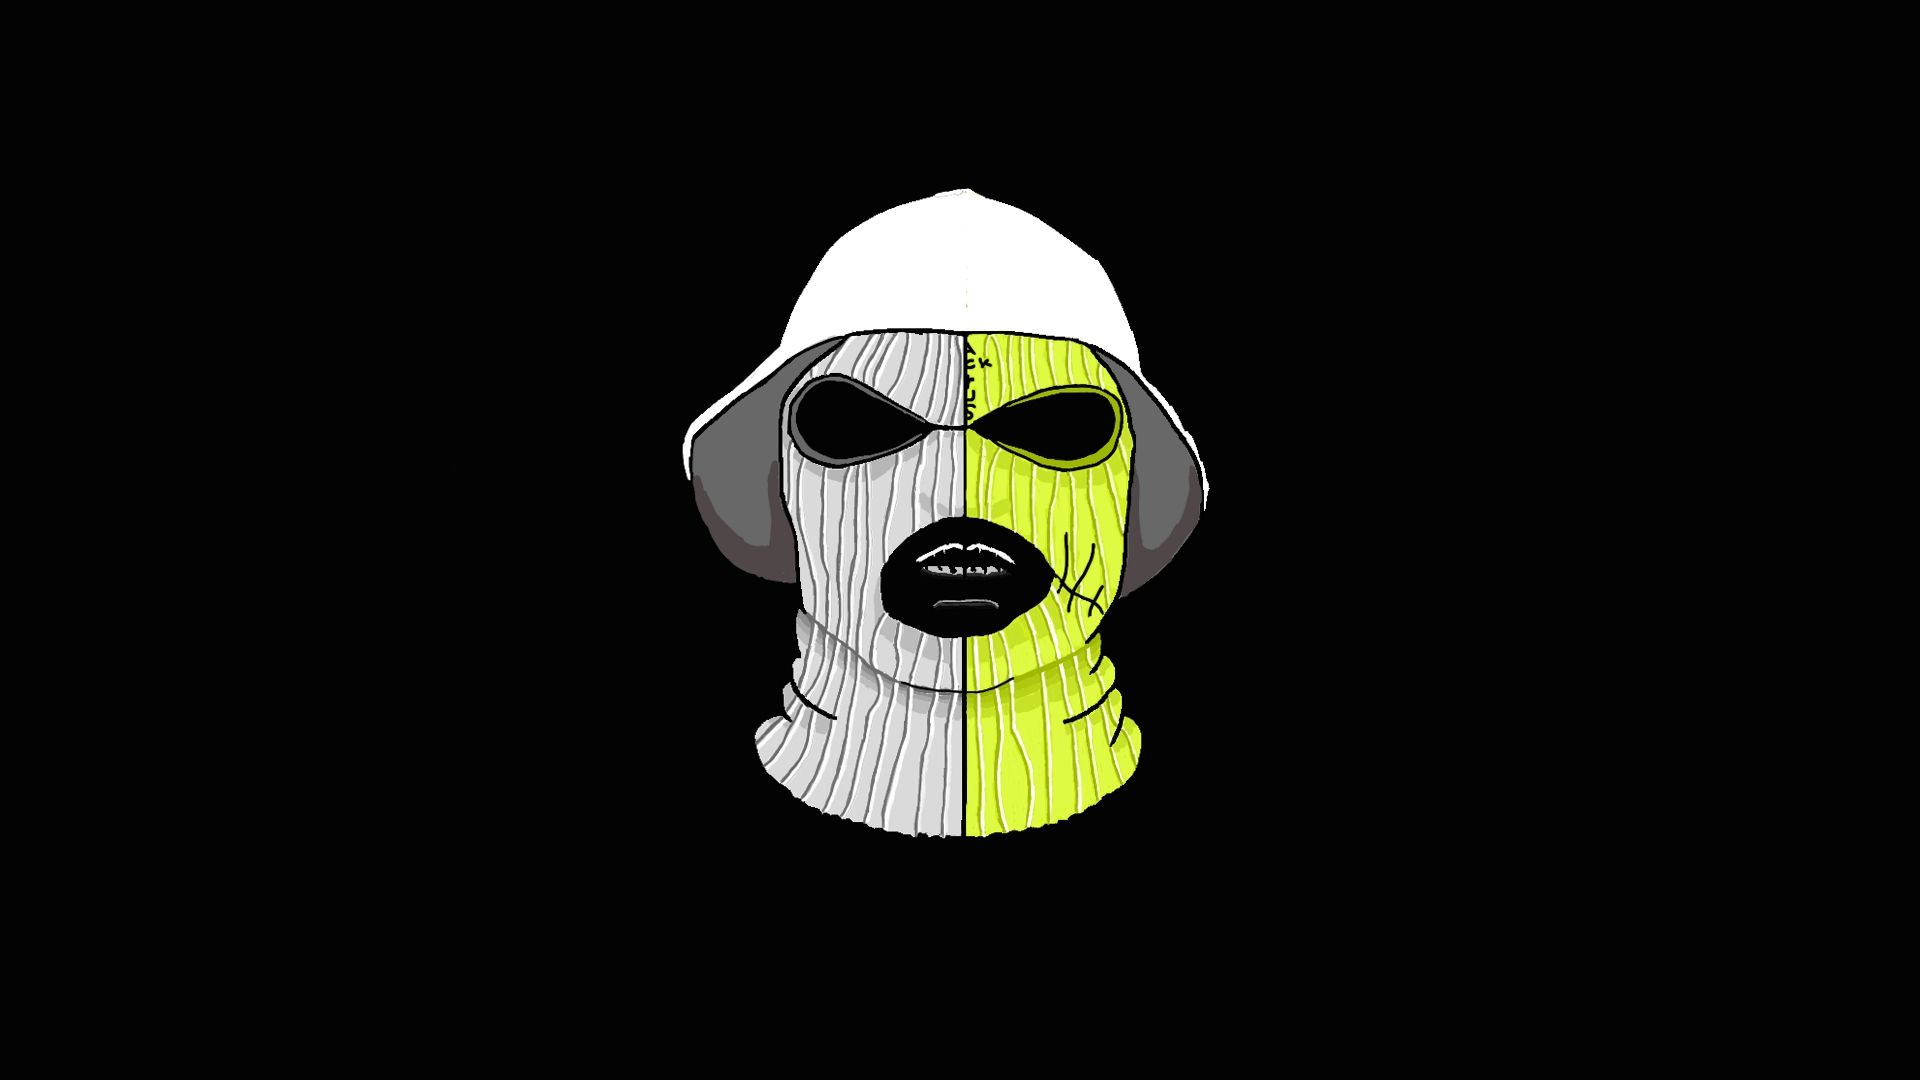 Working With A Producer I Took A Schoolboy Q Mask And A Jackboys One And Combined Them Instagram Doumarts In 2021 School Boy Schoolboy Q Hip Hop Art